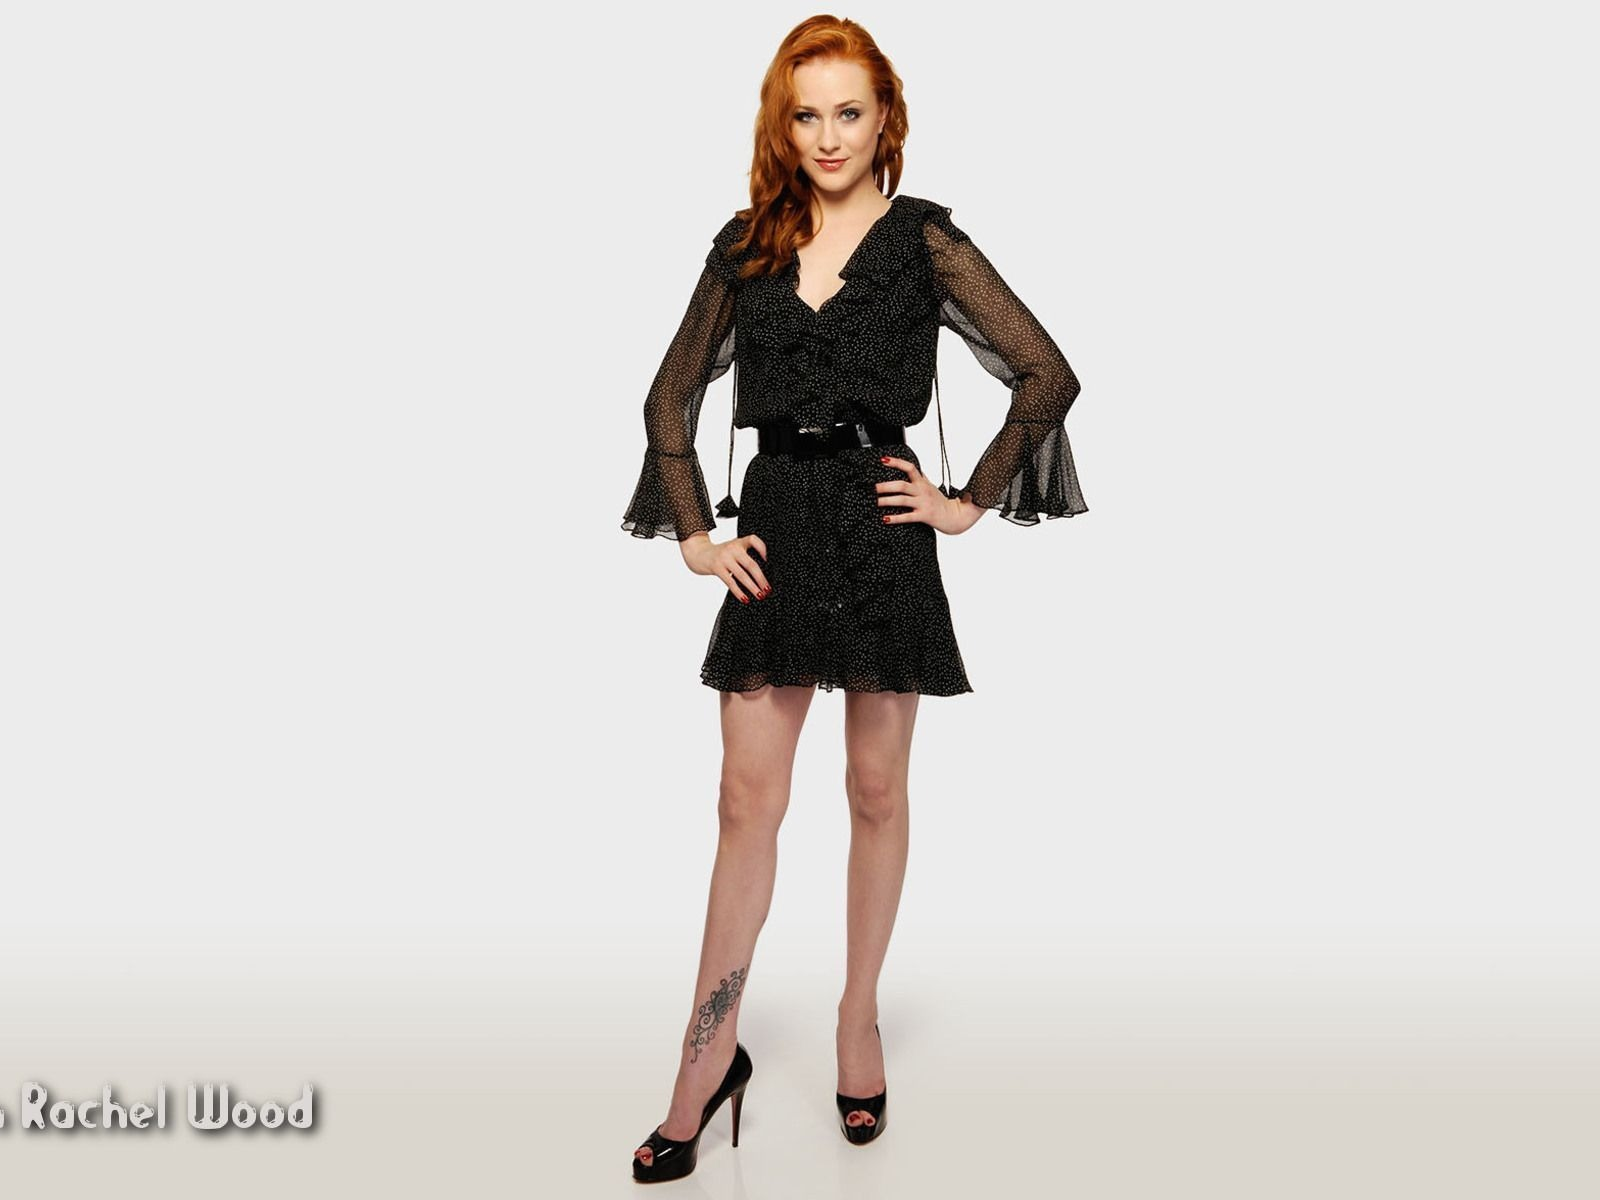 Evan Rachel Wood #010 - 1600x1200 Wallpapers Pictures Photos Images